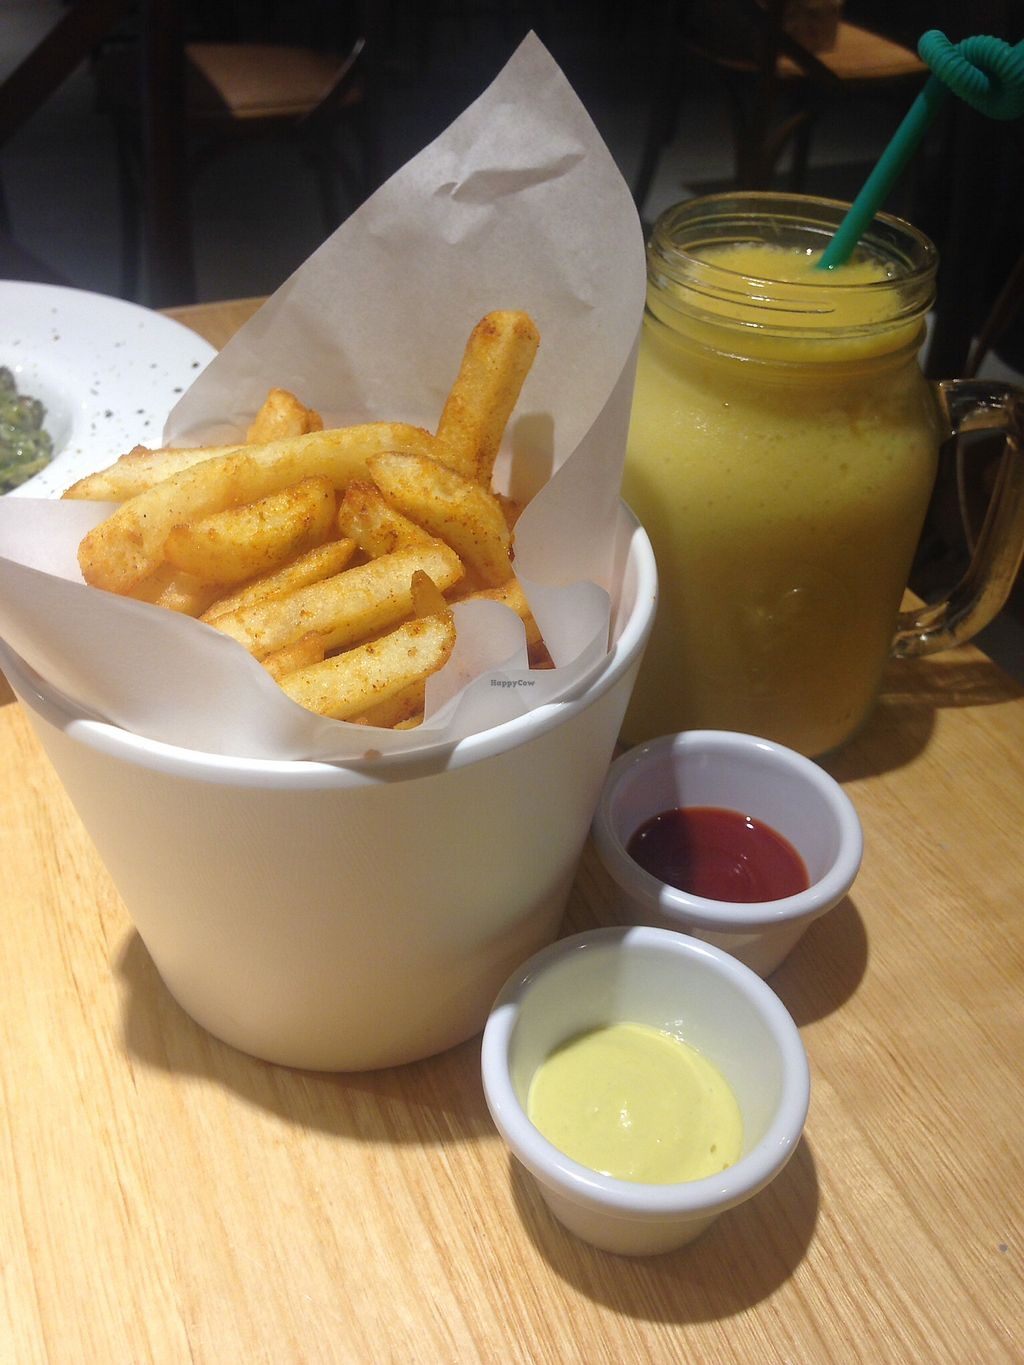 """Photo of Mani Mani  by <a href=""""/members/profile/kevin.nyk"""">kevin.nyk</a> <br/>Crispy Golden Fries and Apricot & Mango Smoothie <br/> September 12, 2017  - <a href='/contact/abuse/image/99771/303556'>Report</a>"""